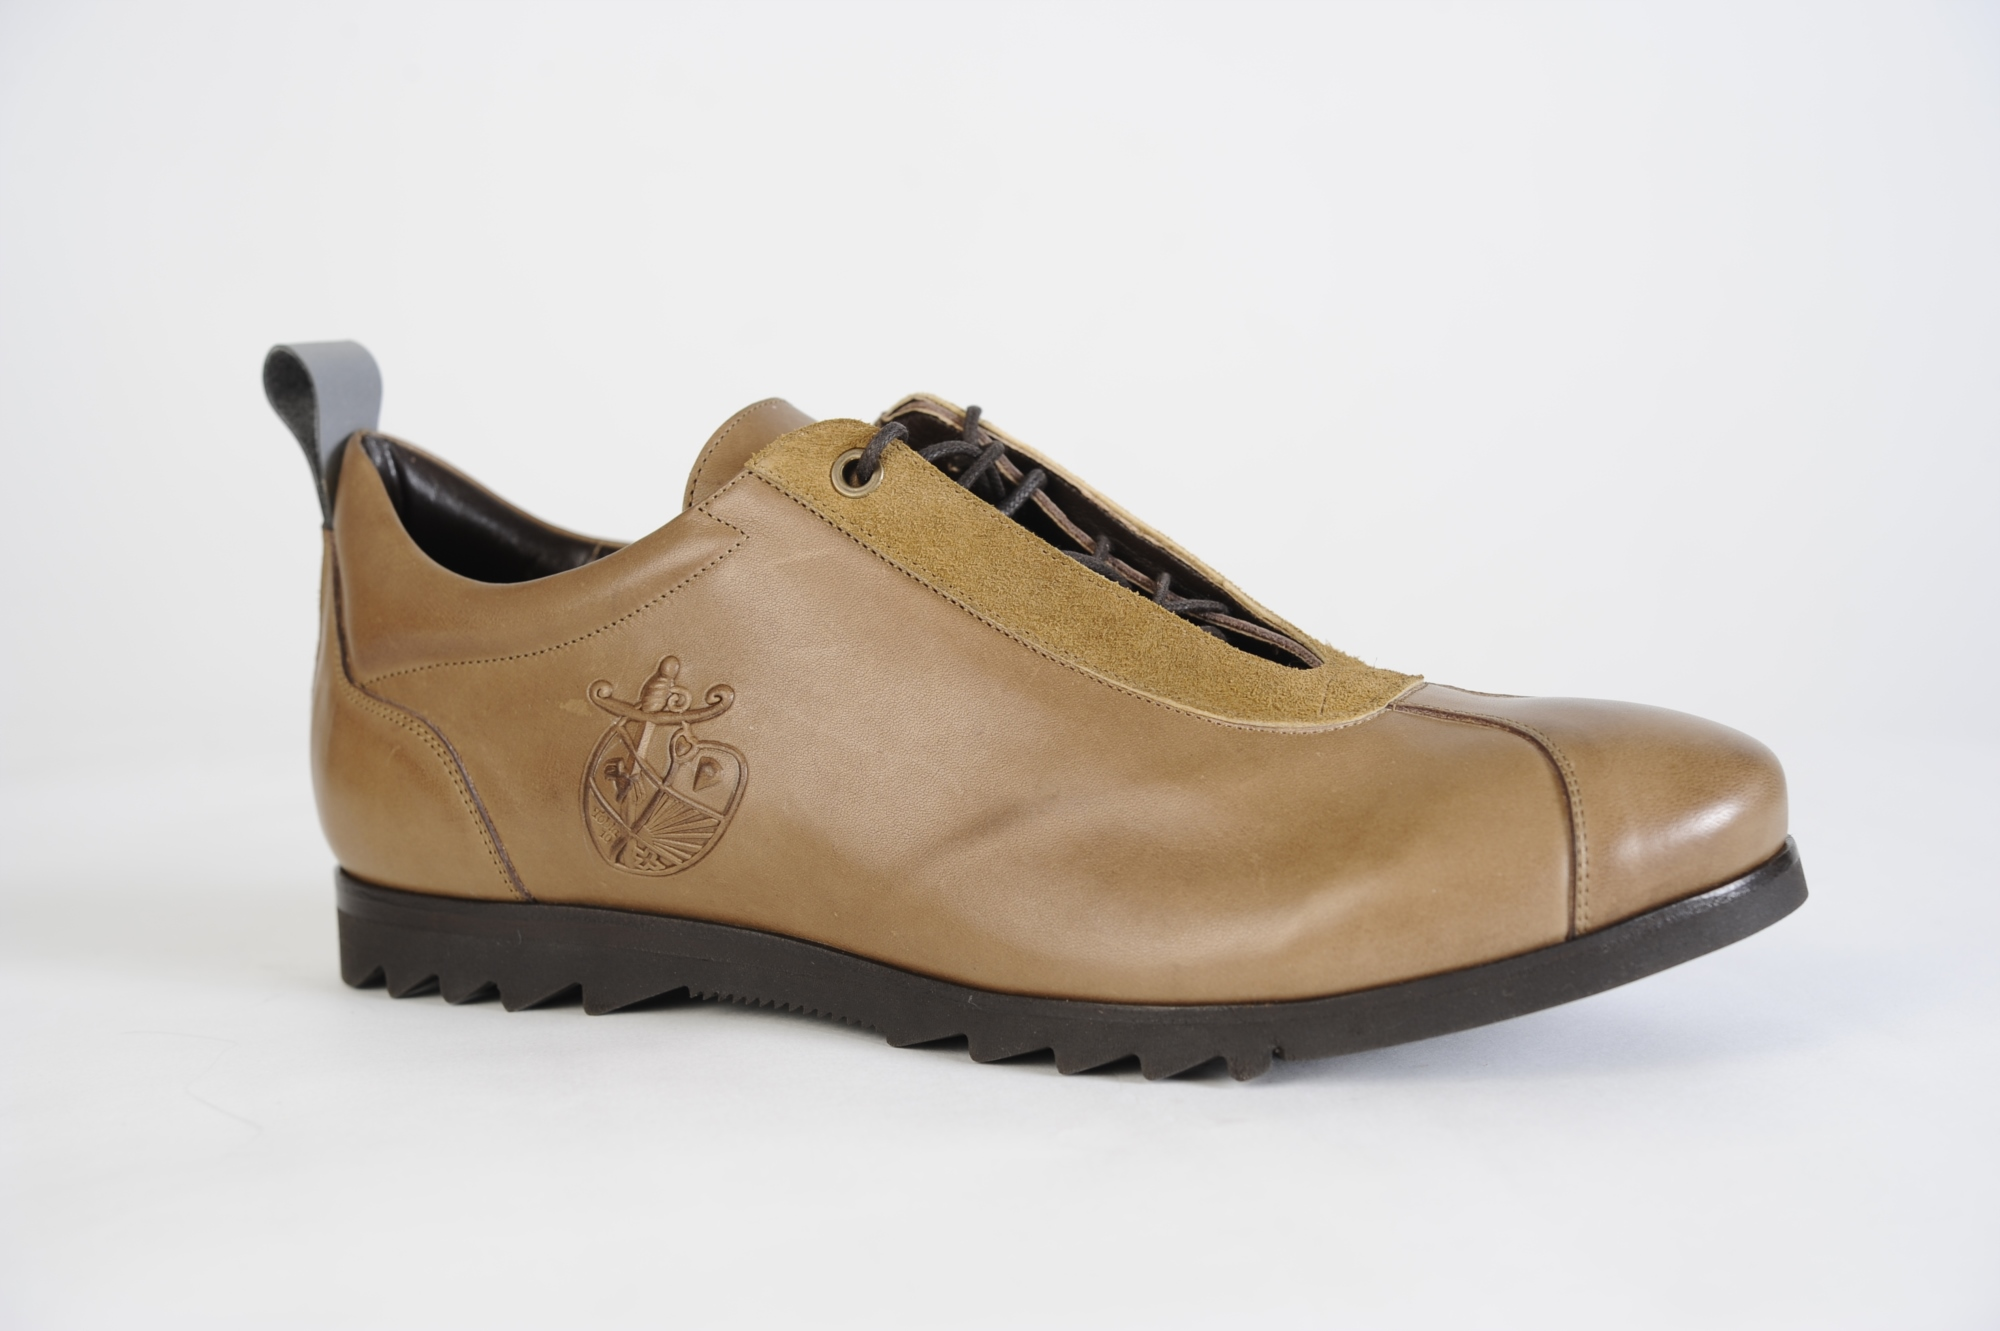 tobia longarini footwear crafted lancillotto dakota low